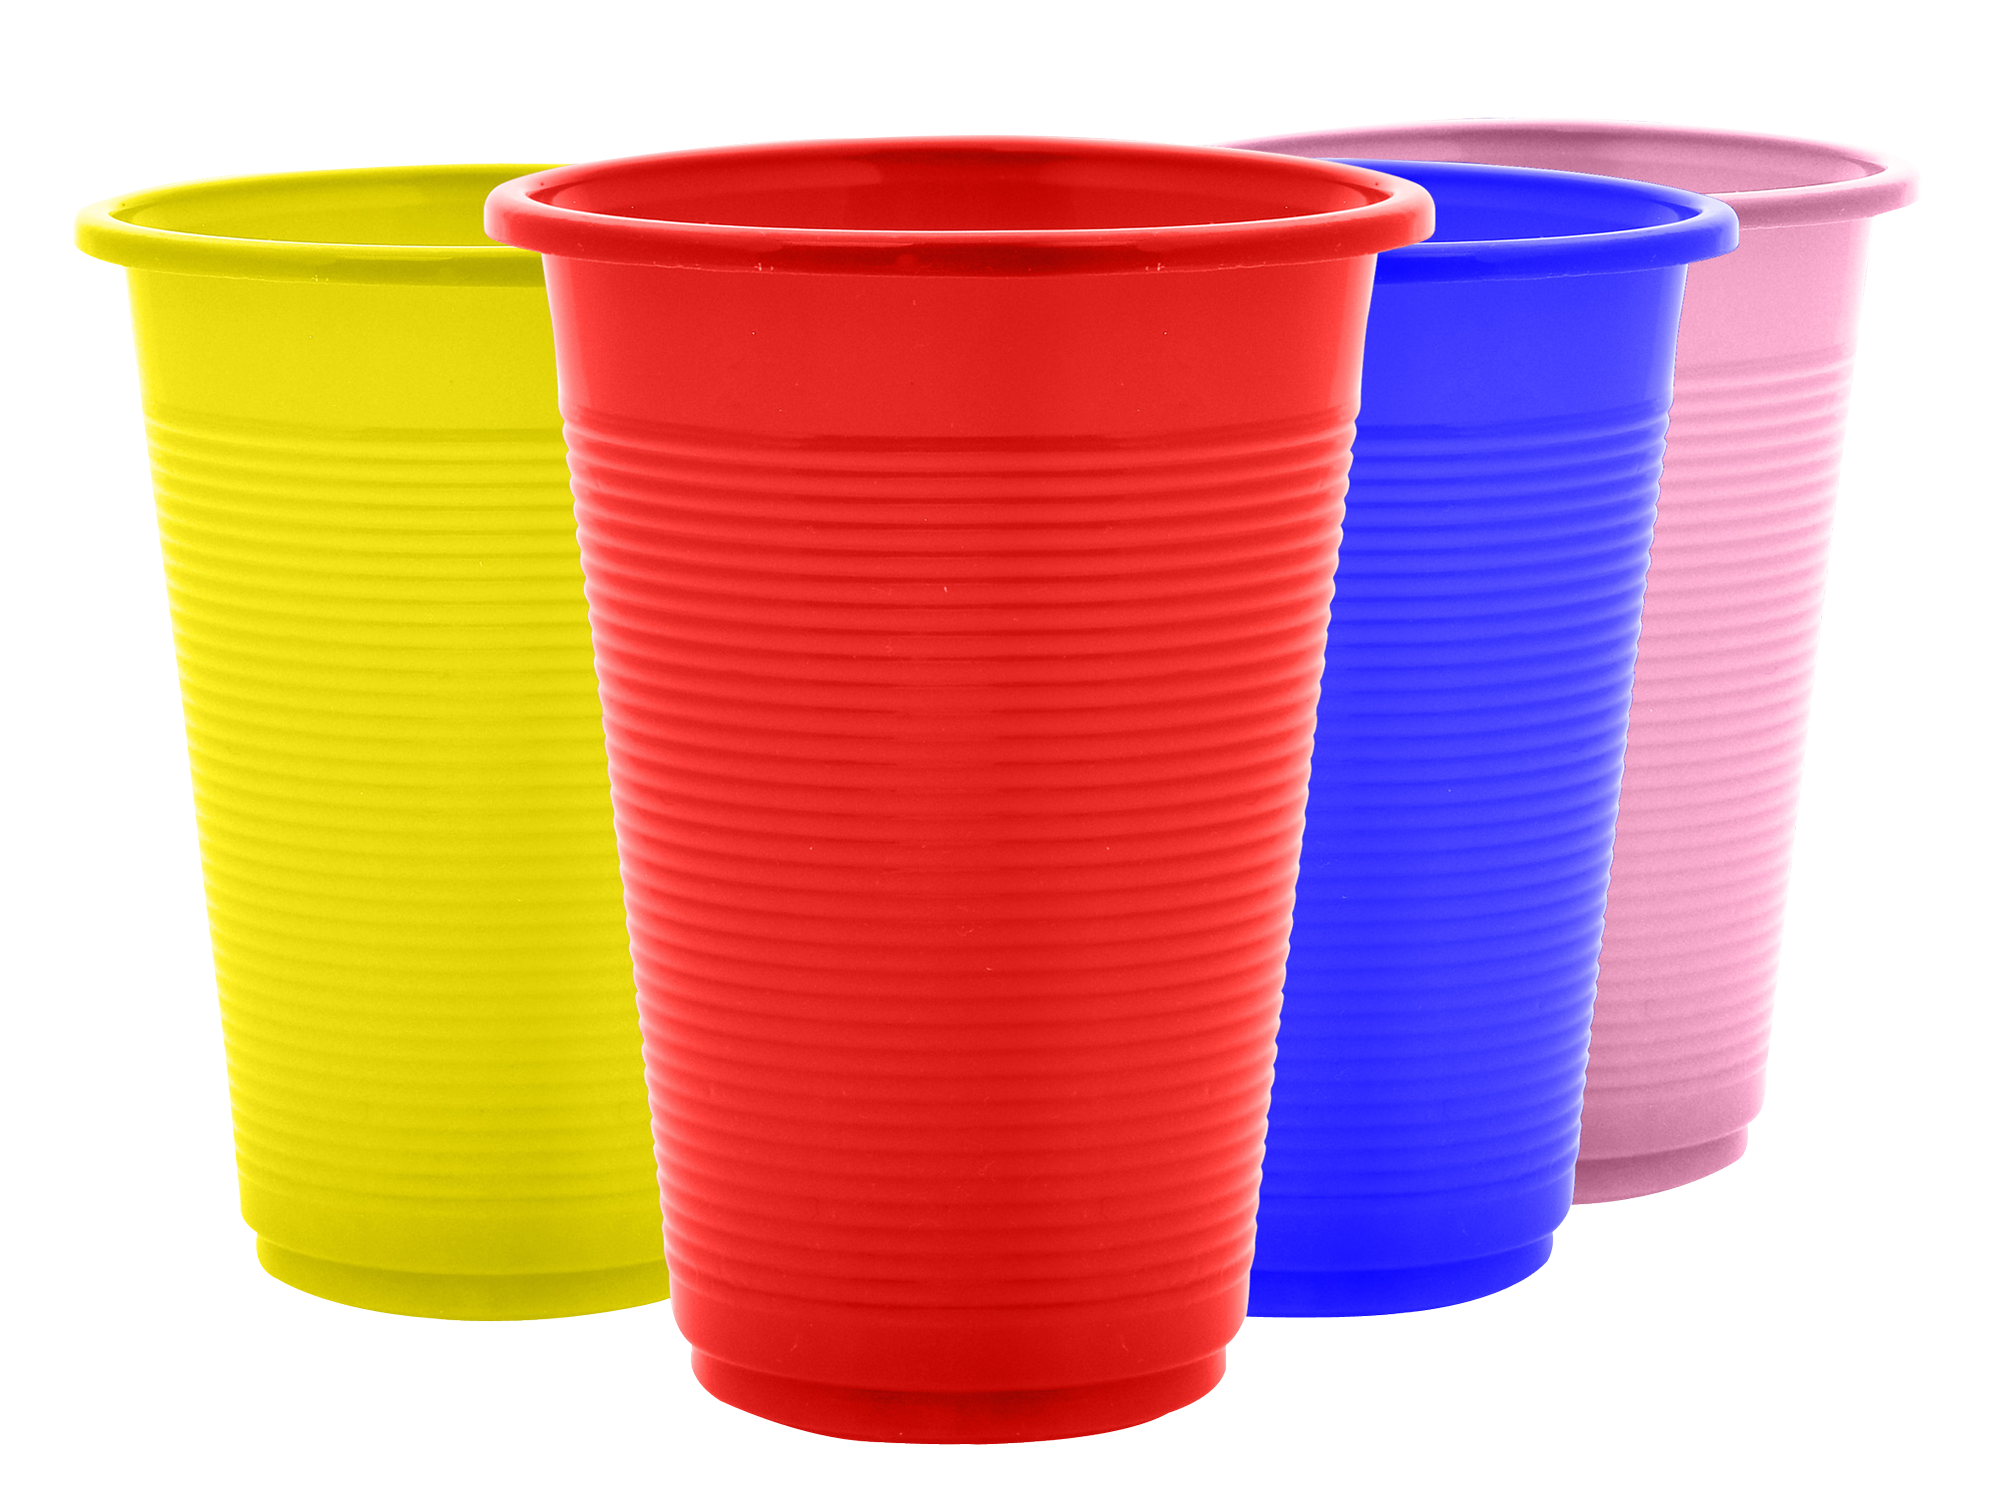 Red plastic cup png. Image pngpix